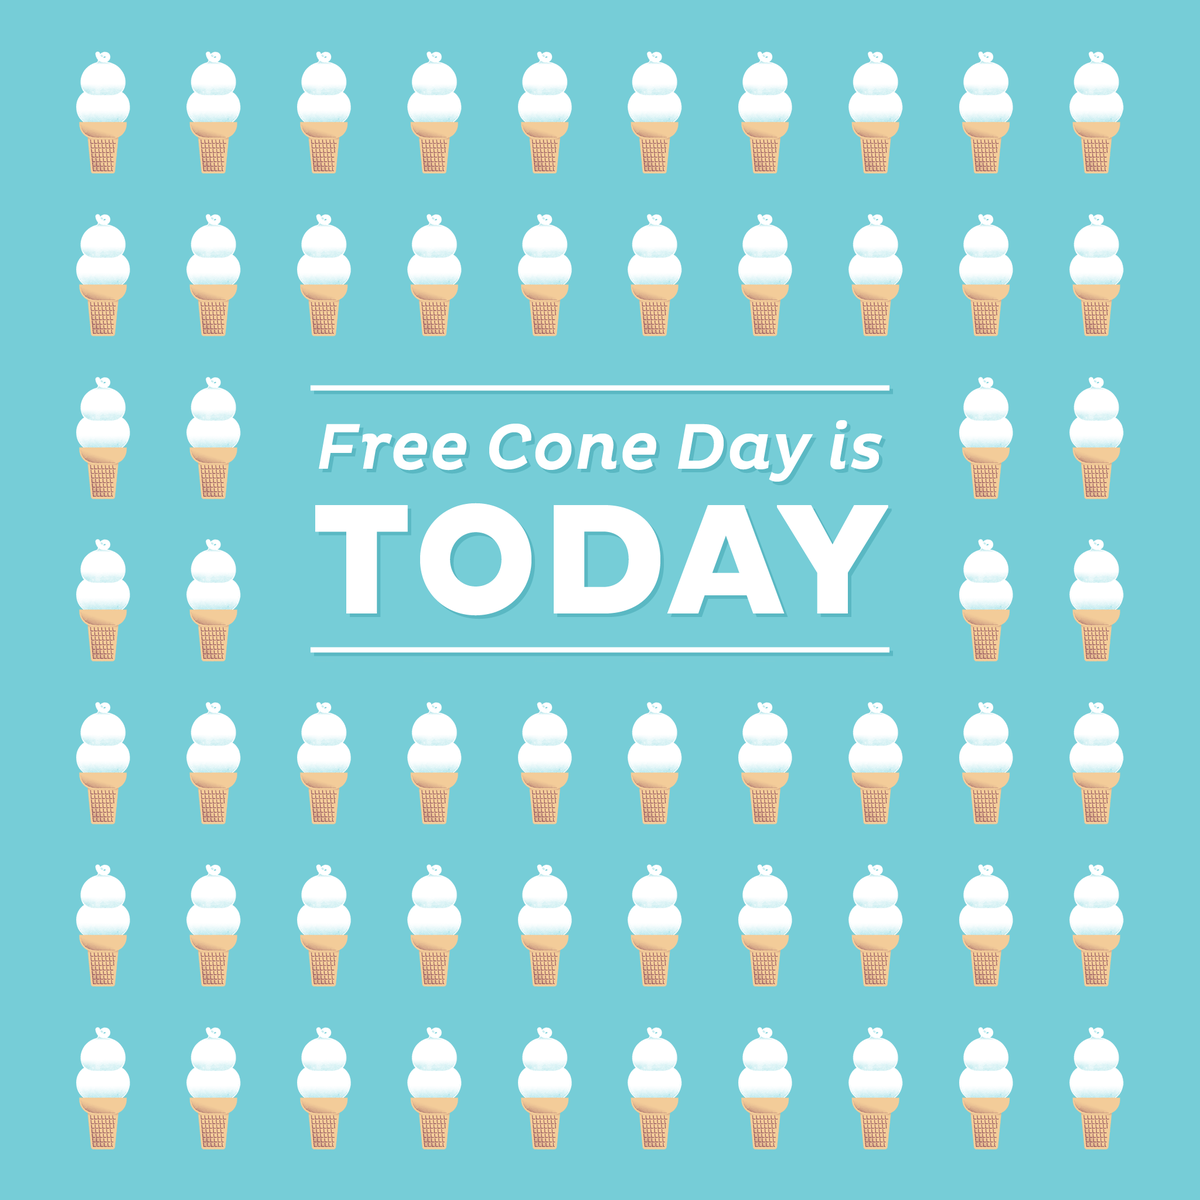 Today is FREE CONE DAY! Join us in DQ stores across America for a FREE soft serve cone. http://t.co/XqEzJ7F8A6